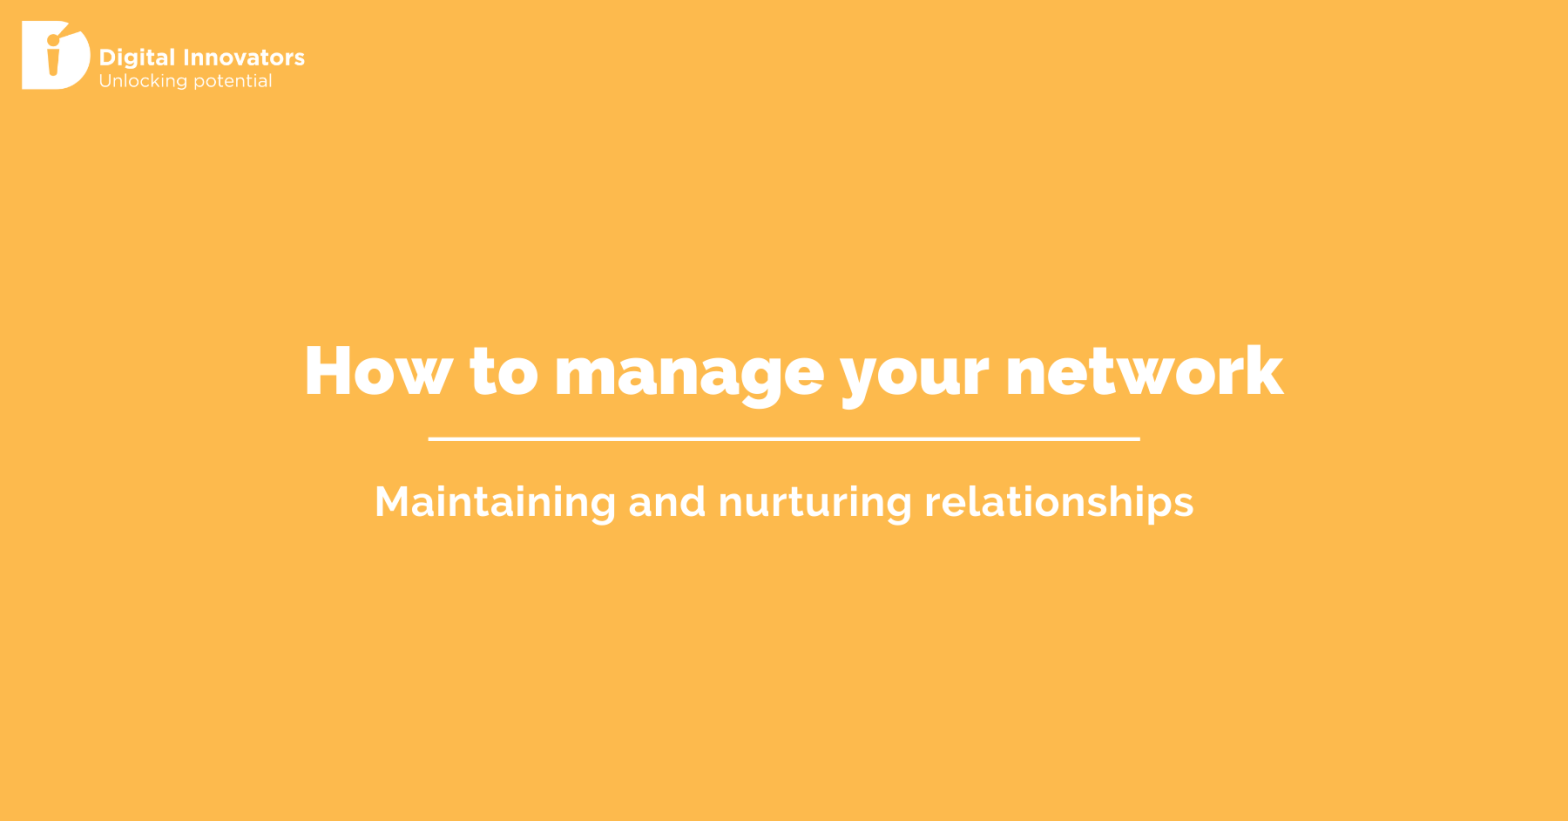 How to manage your network: maintaining and nurturing relationships